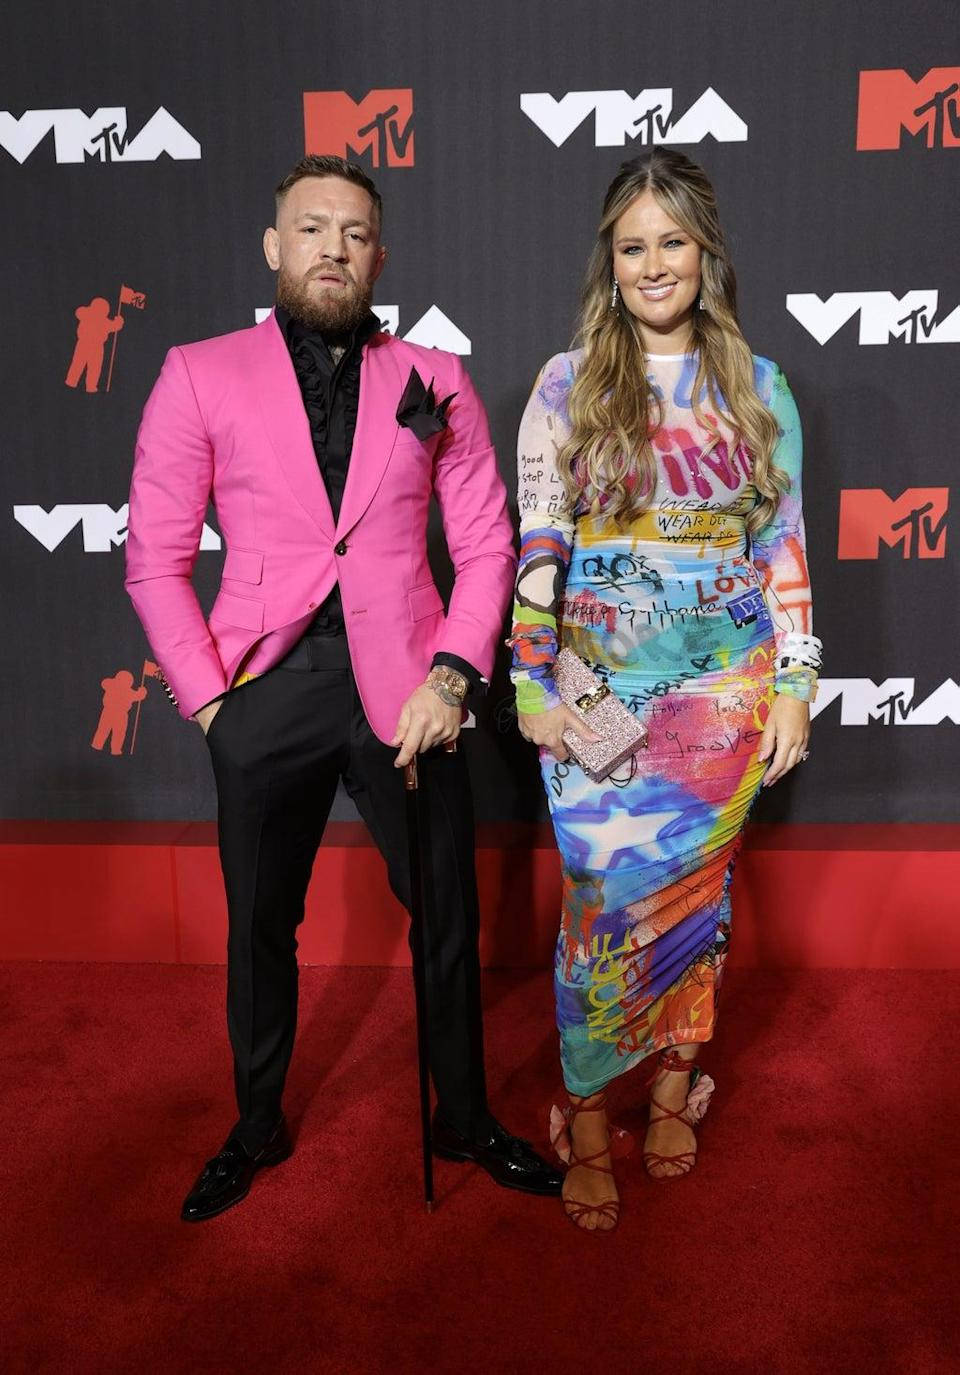 (Getty Images for MTV/ViacomCBS)